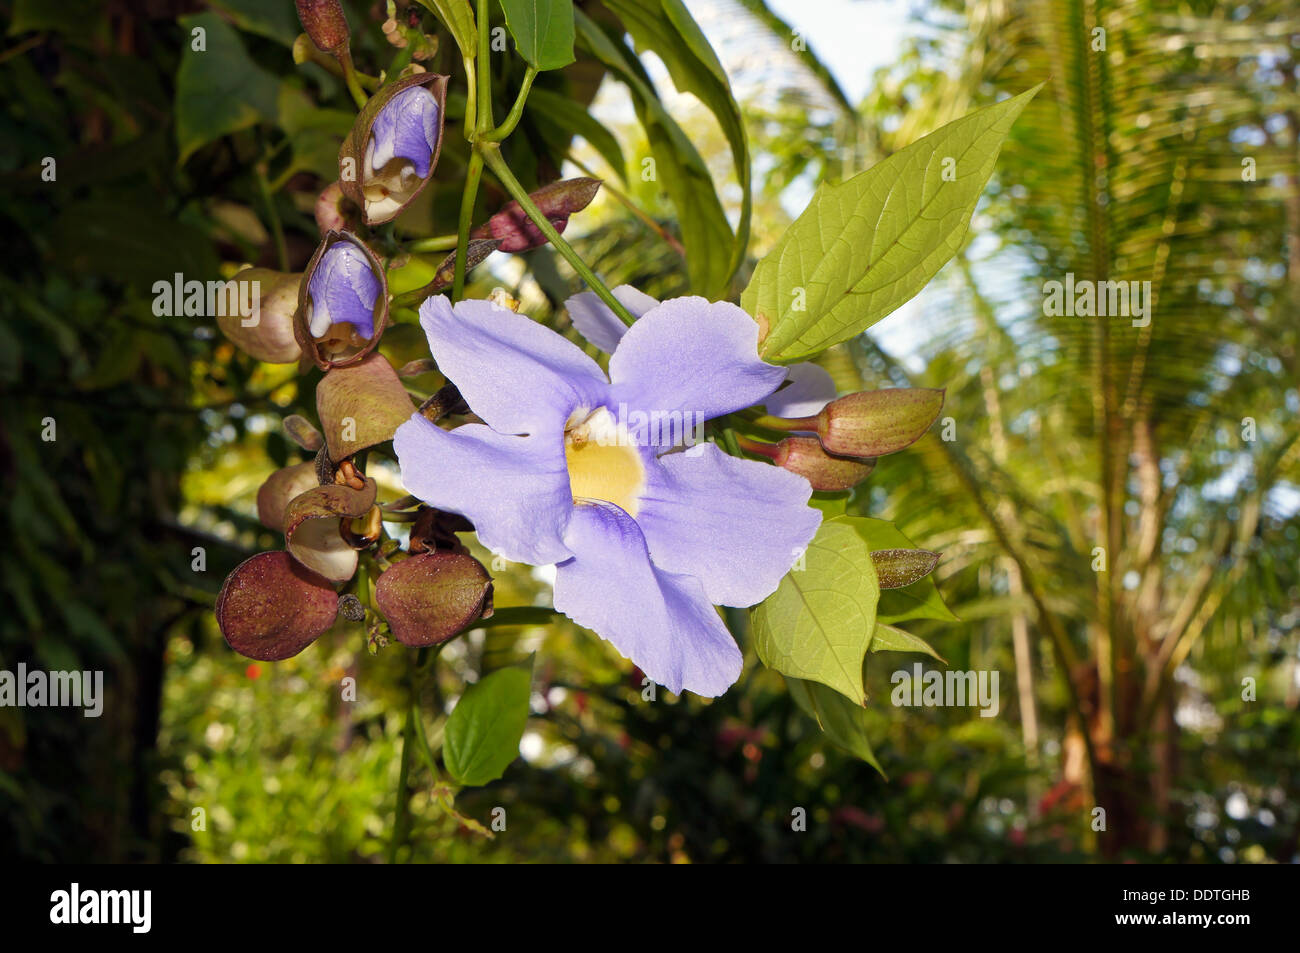 Bengal clock vine or sky flower (Thunbergia grandiflora) with buds - Stock Image